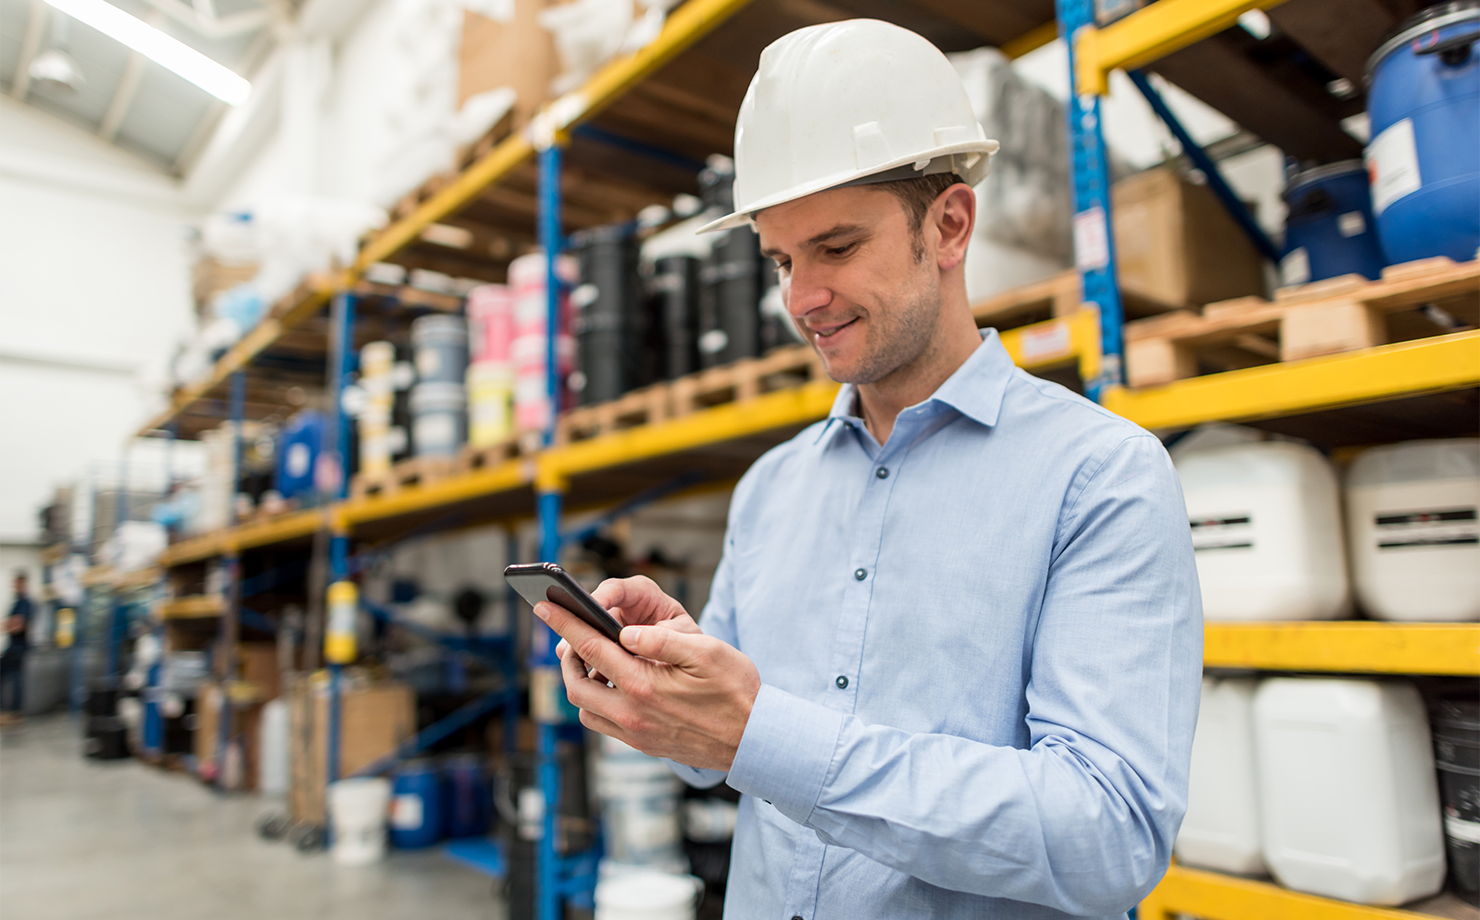 Portrait-of-a-man-working-at-a-warehouse-using-his-cell-phone-856634662_7119x4912